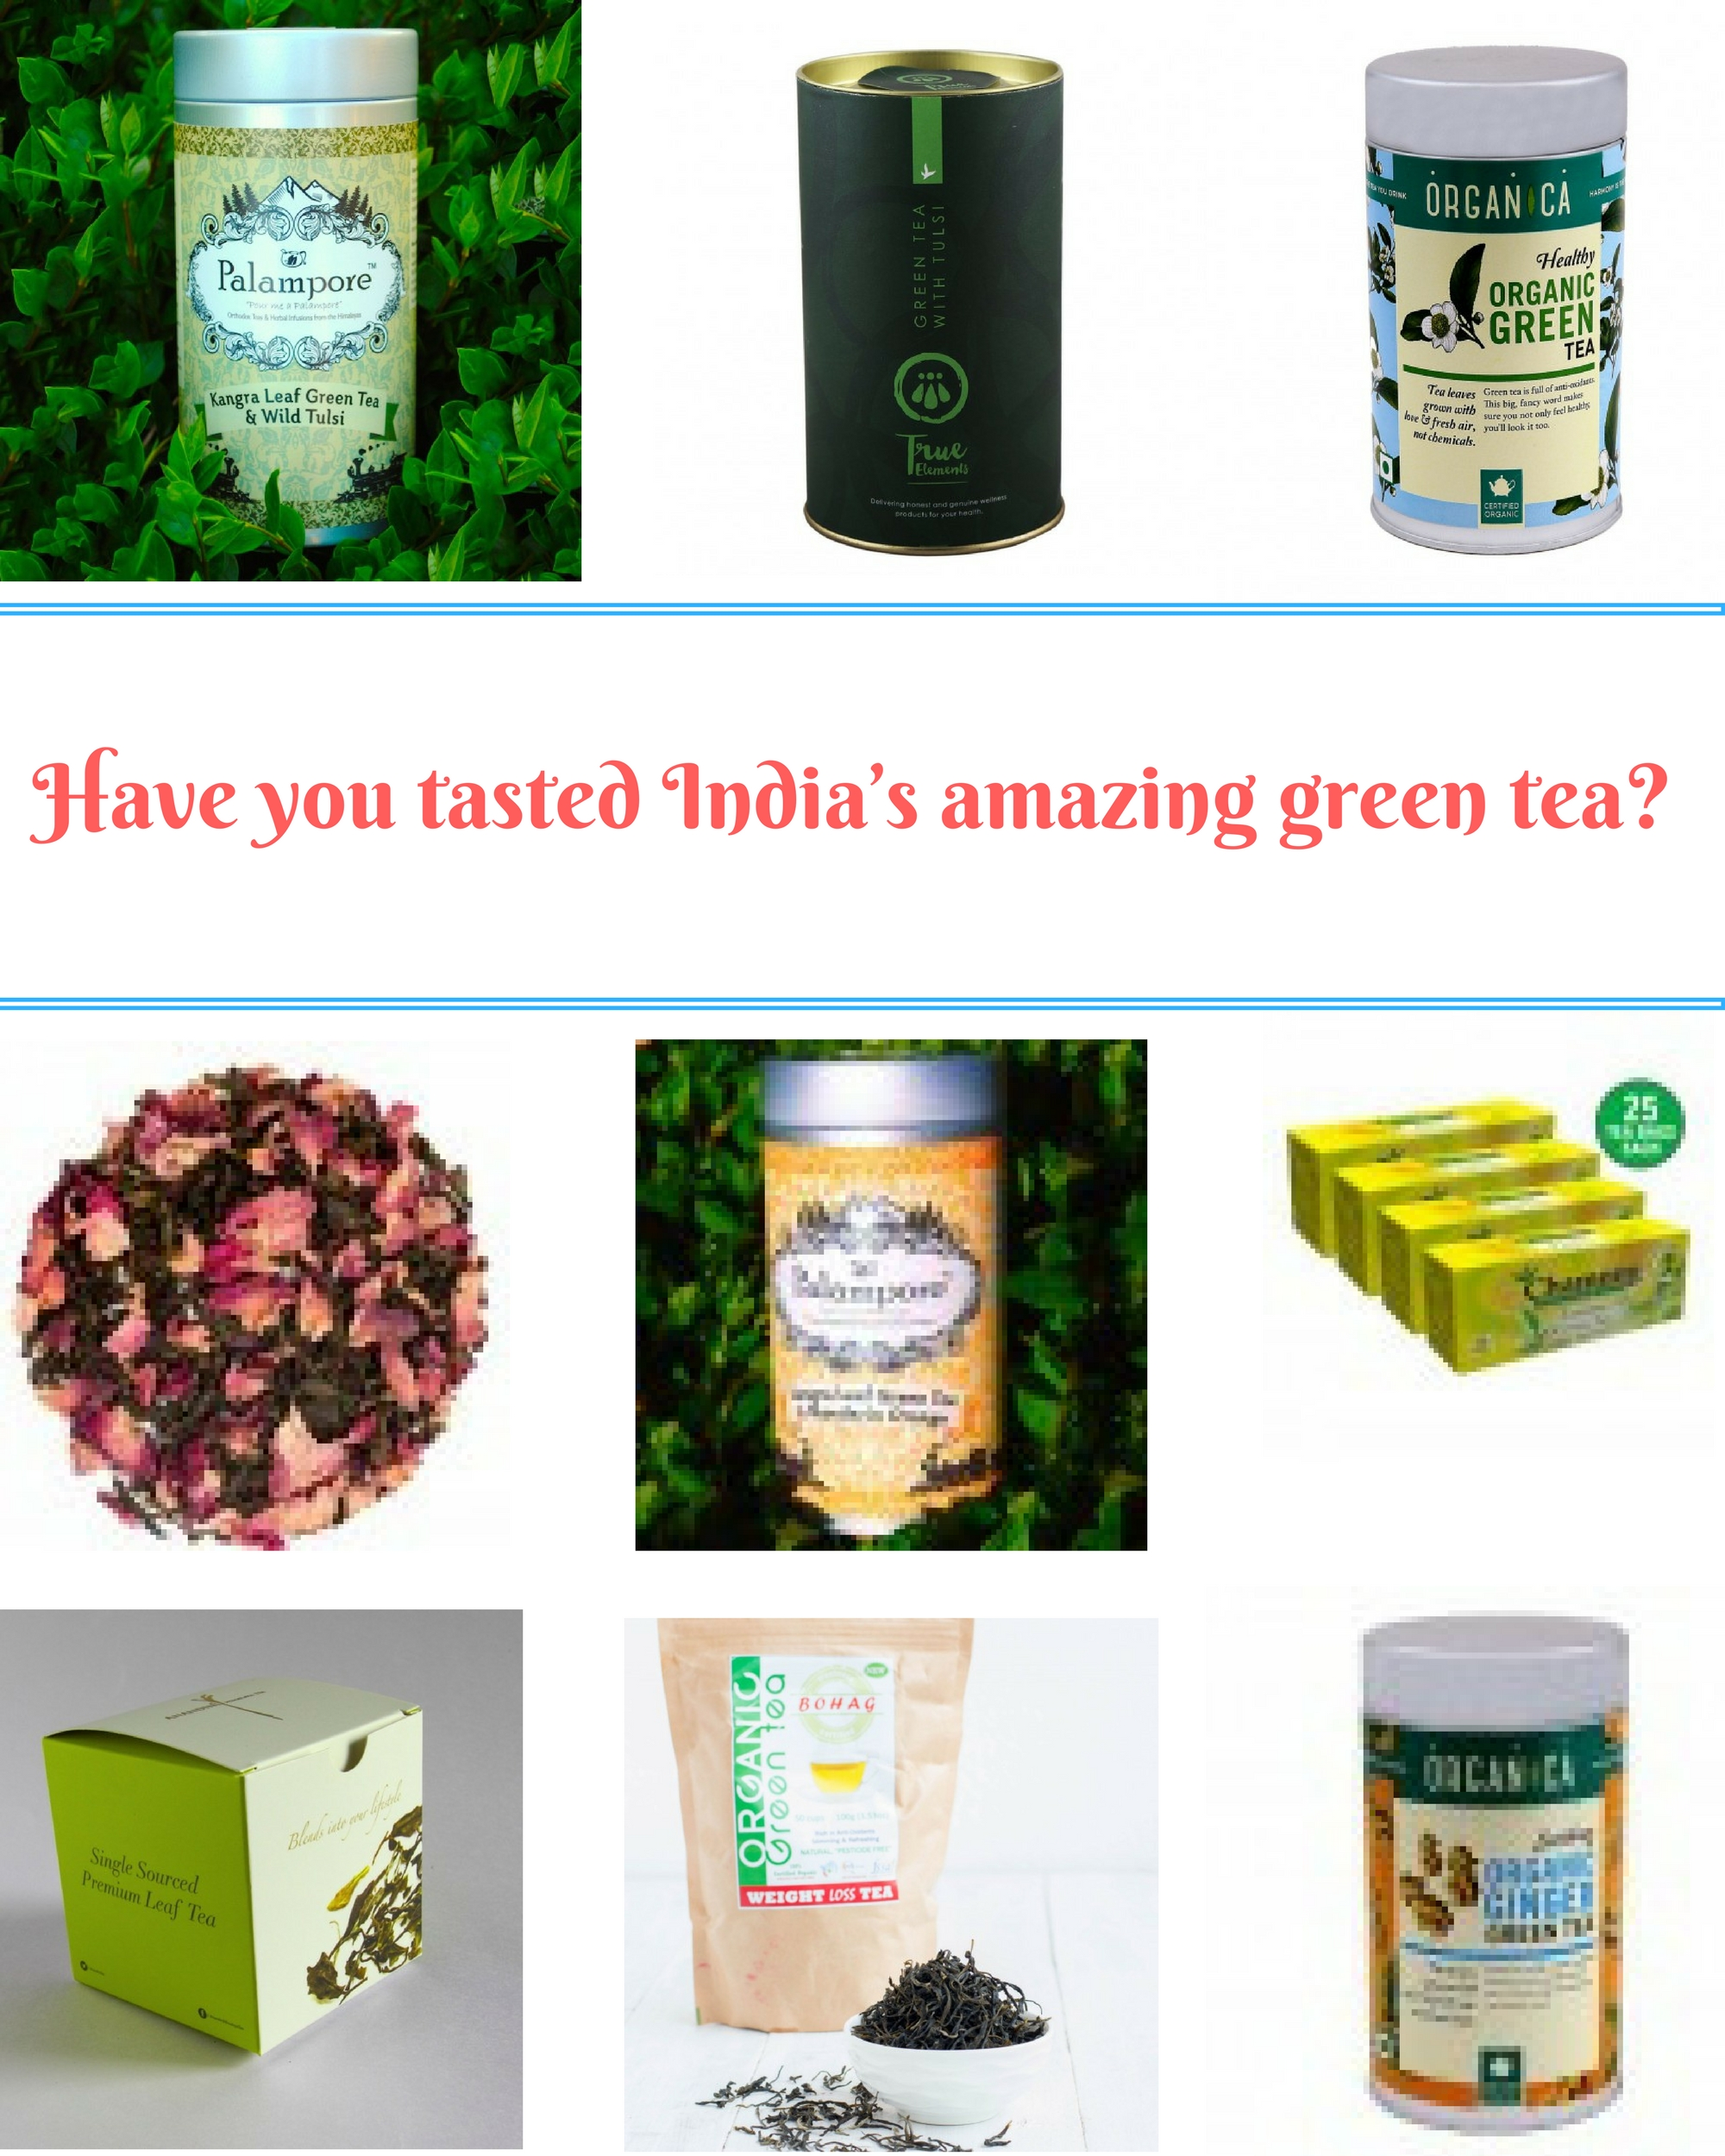 Have you tasted India's amazing green tea?|poojascookery.com